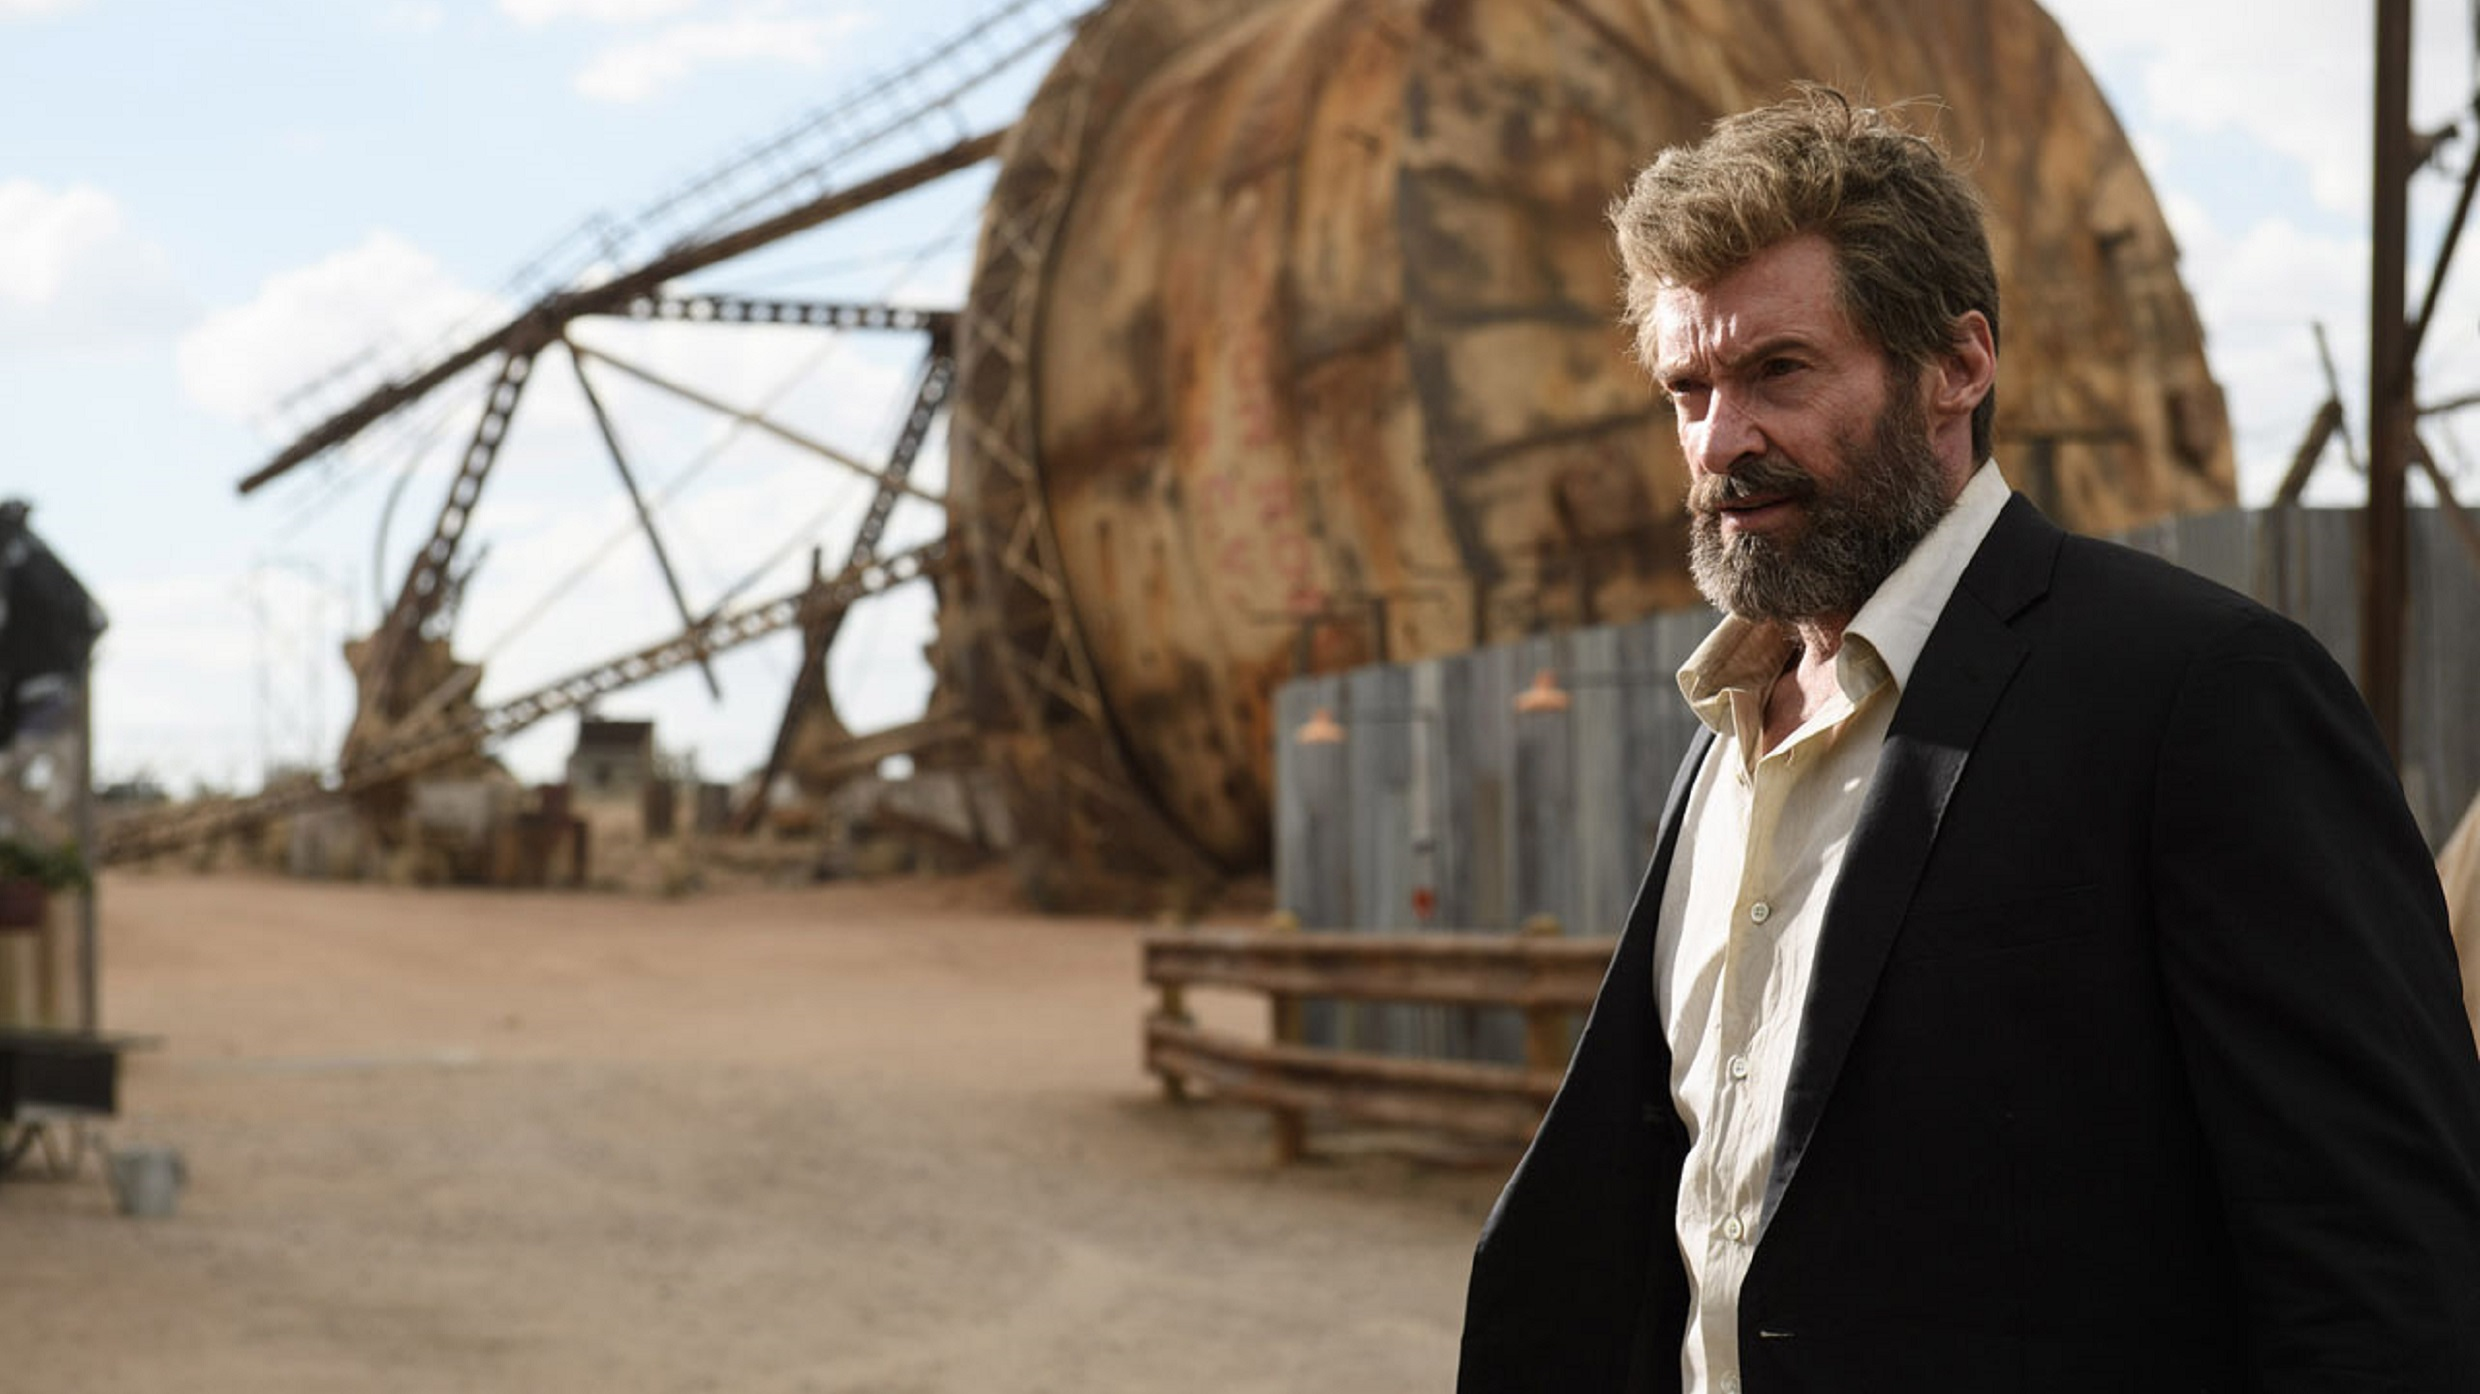 Watch Hugh Jackman grunt, groan, and scream in hilarious behind-the-scenes Logan clip